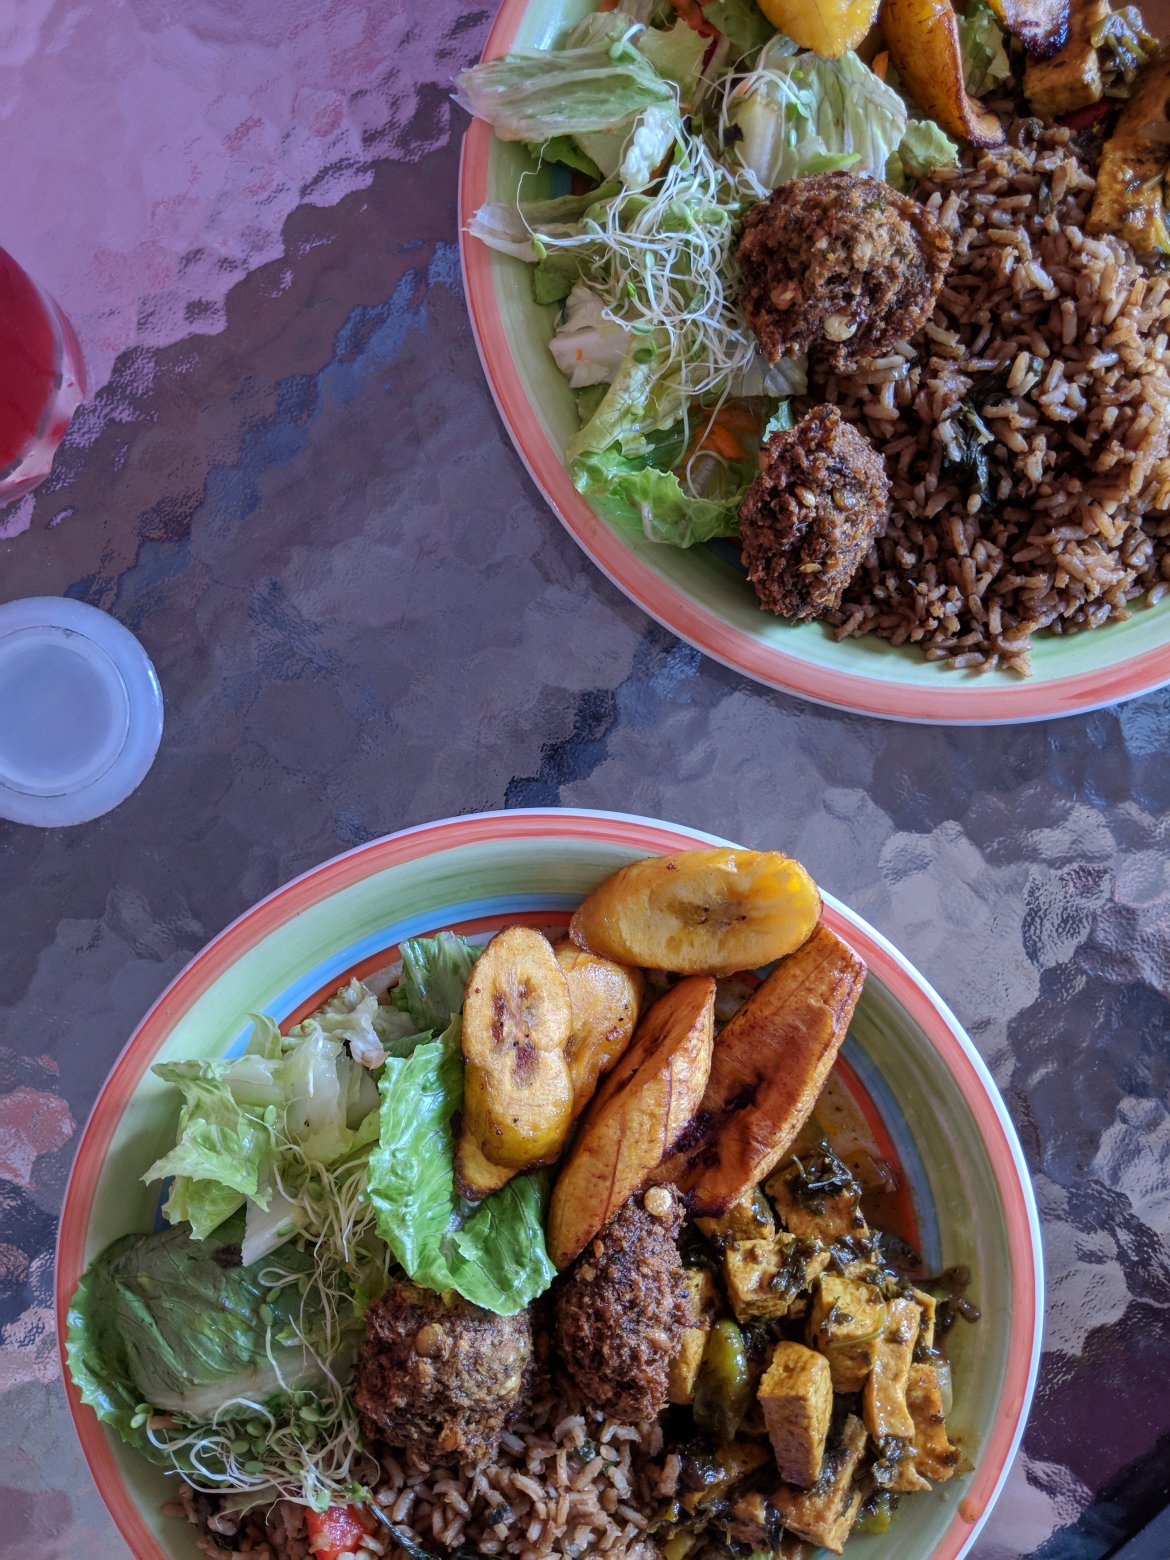 Ital in Paradise restaurant in Christiansted